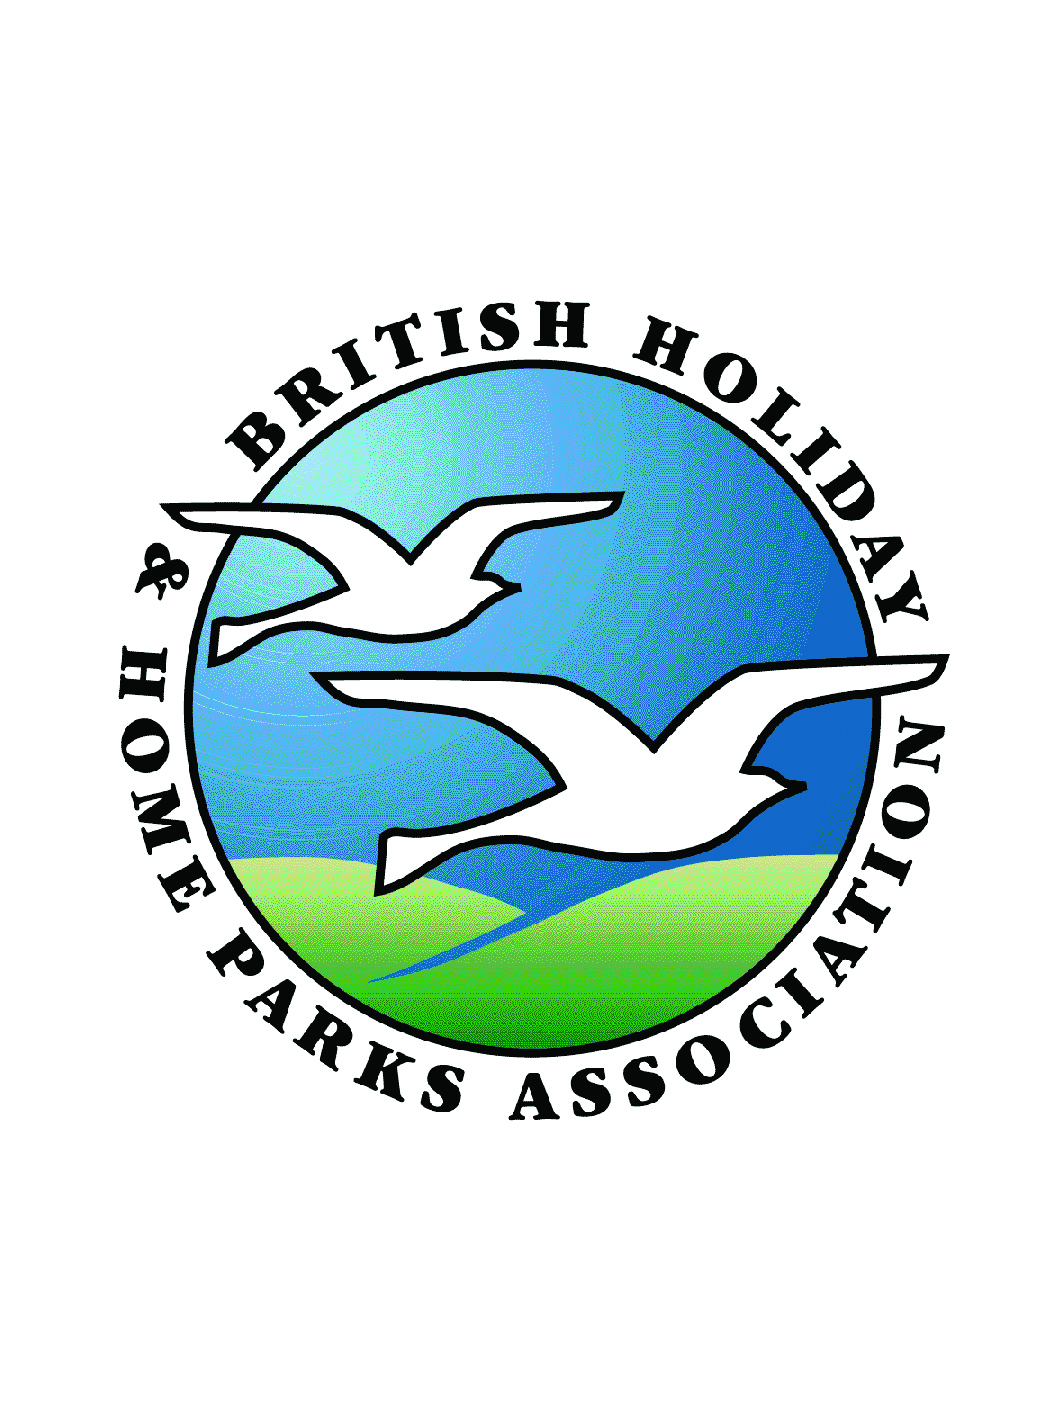 British Holiday Park Association